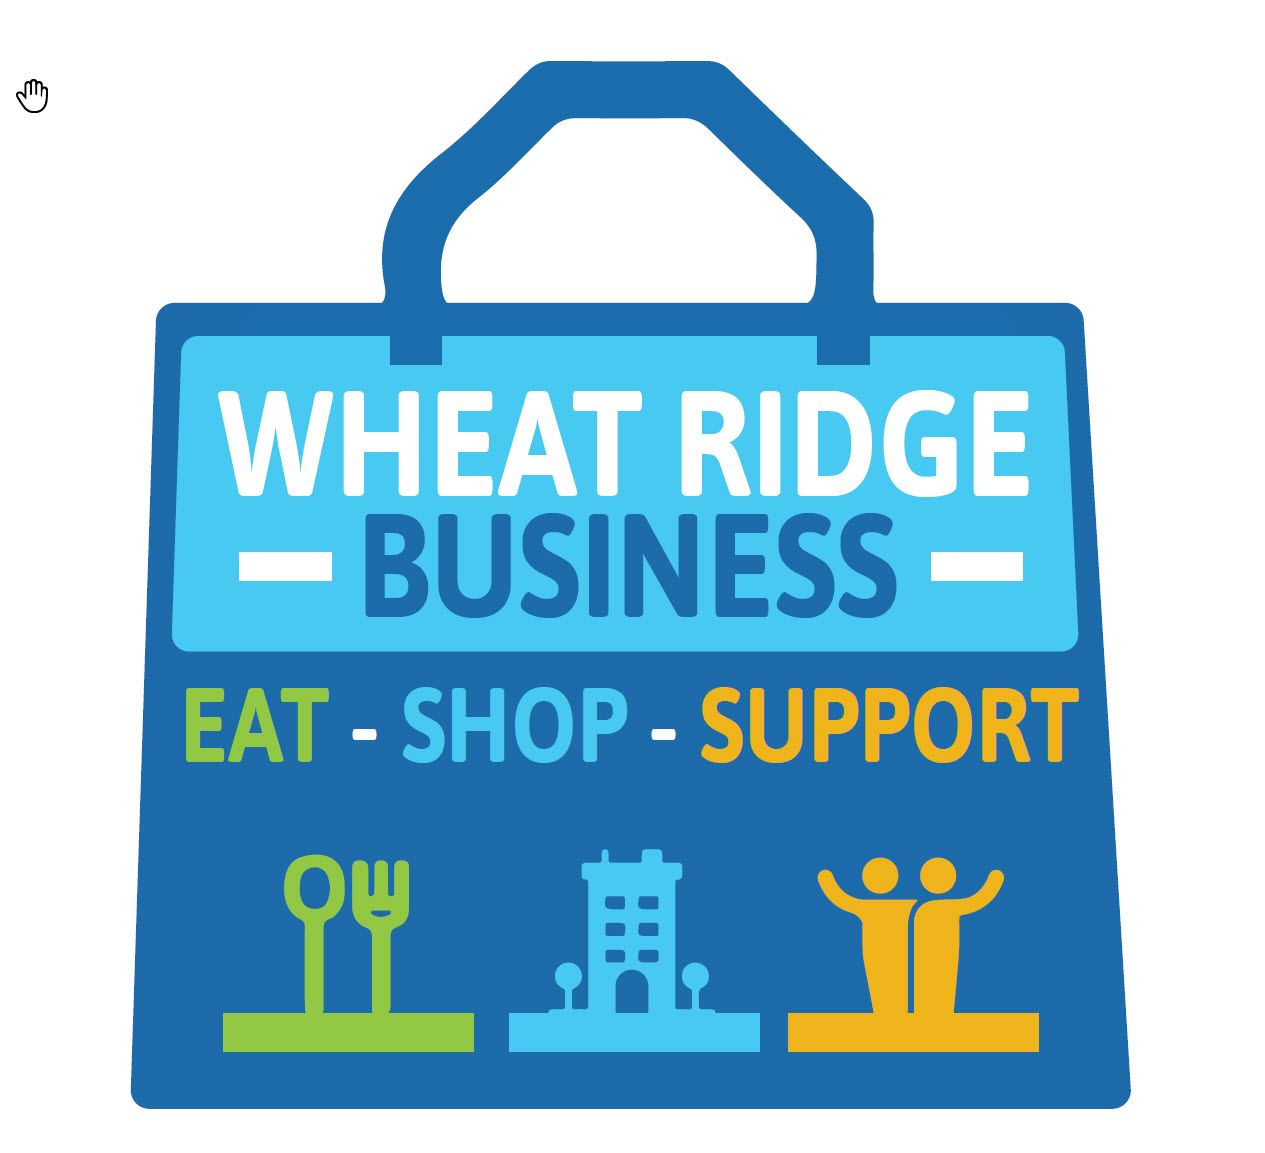 Eat Shop Support Wheat Ridge Business text placed in what looks like a shopping bag